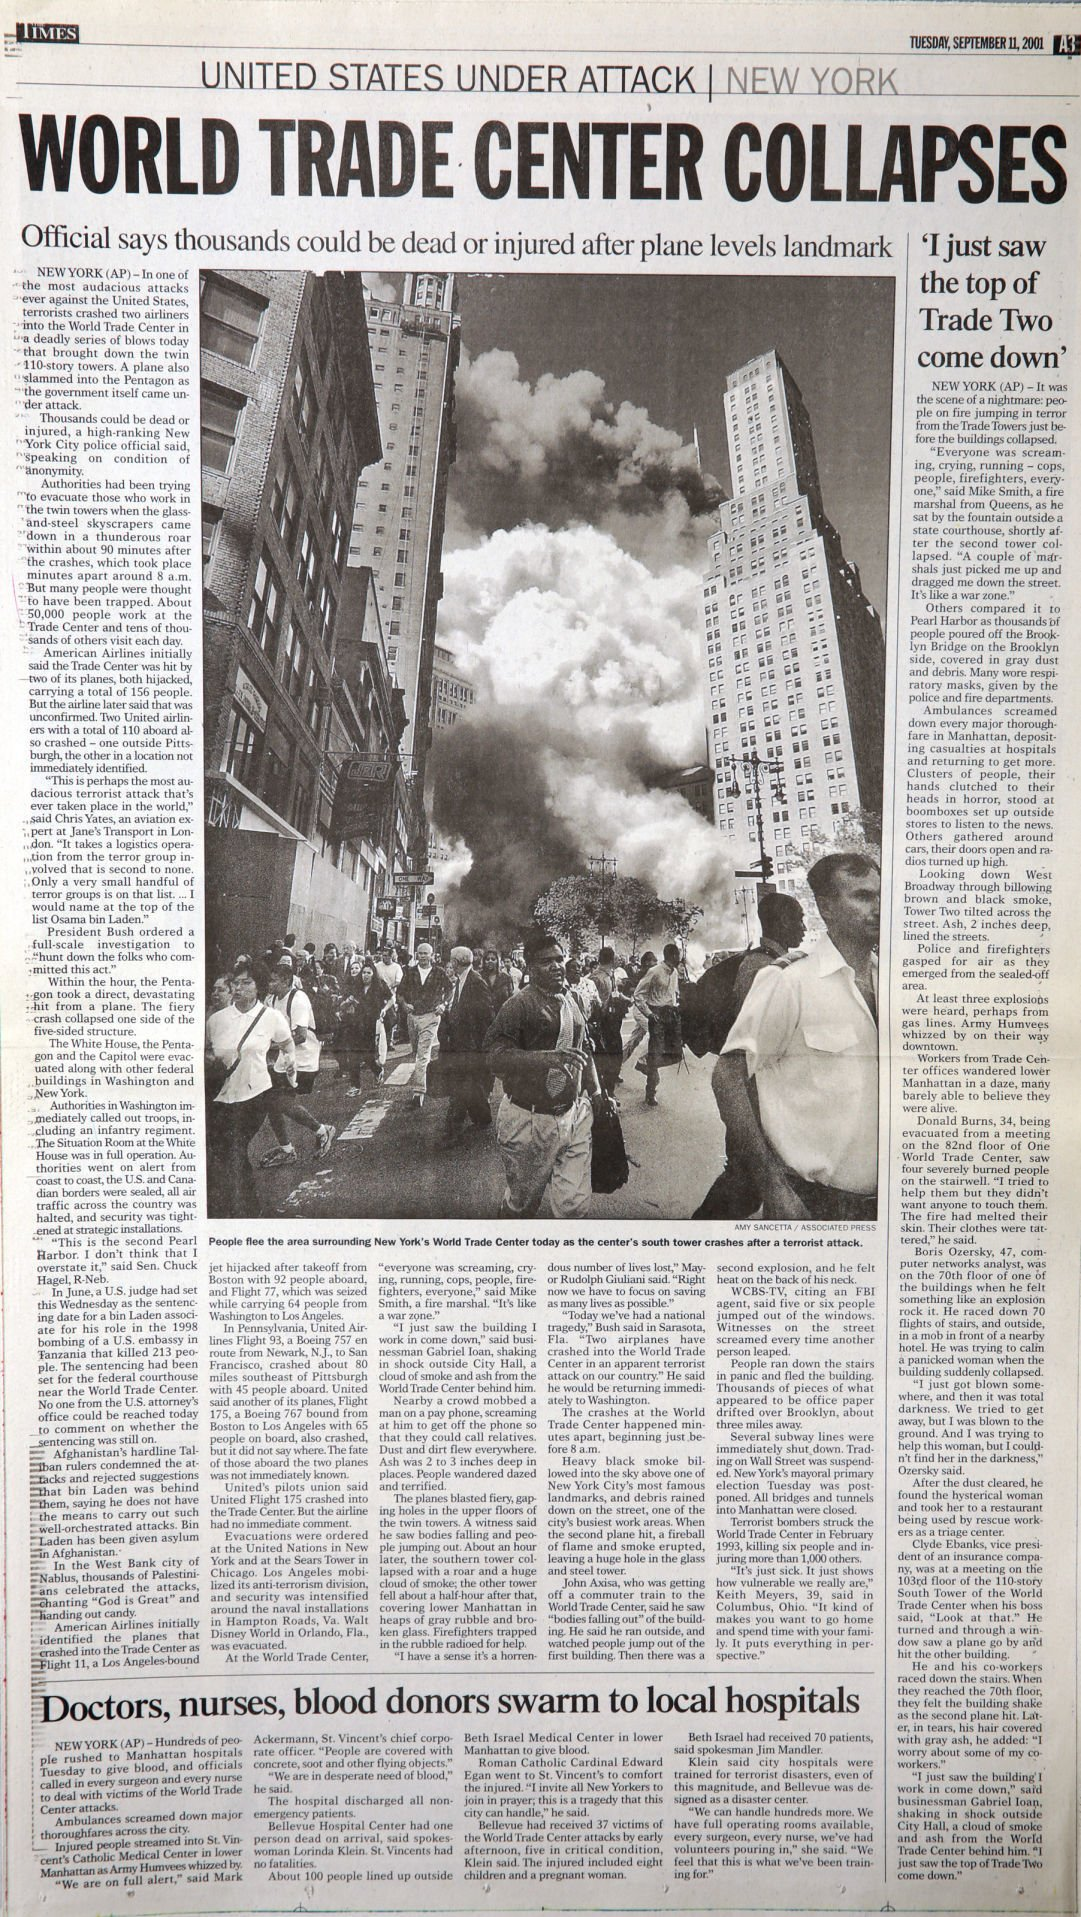 Gallery: The Times extra from Sept. 11, 2001